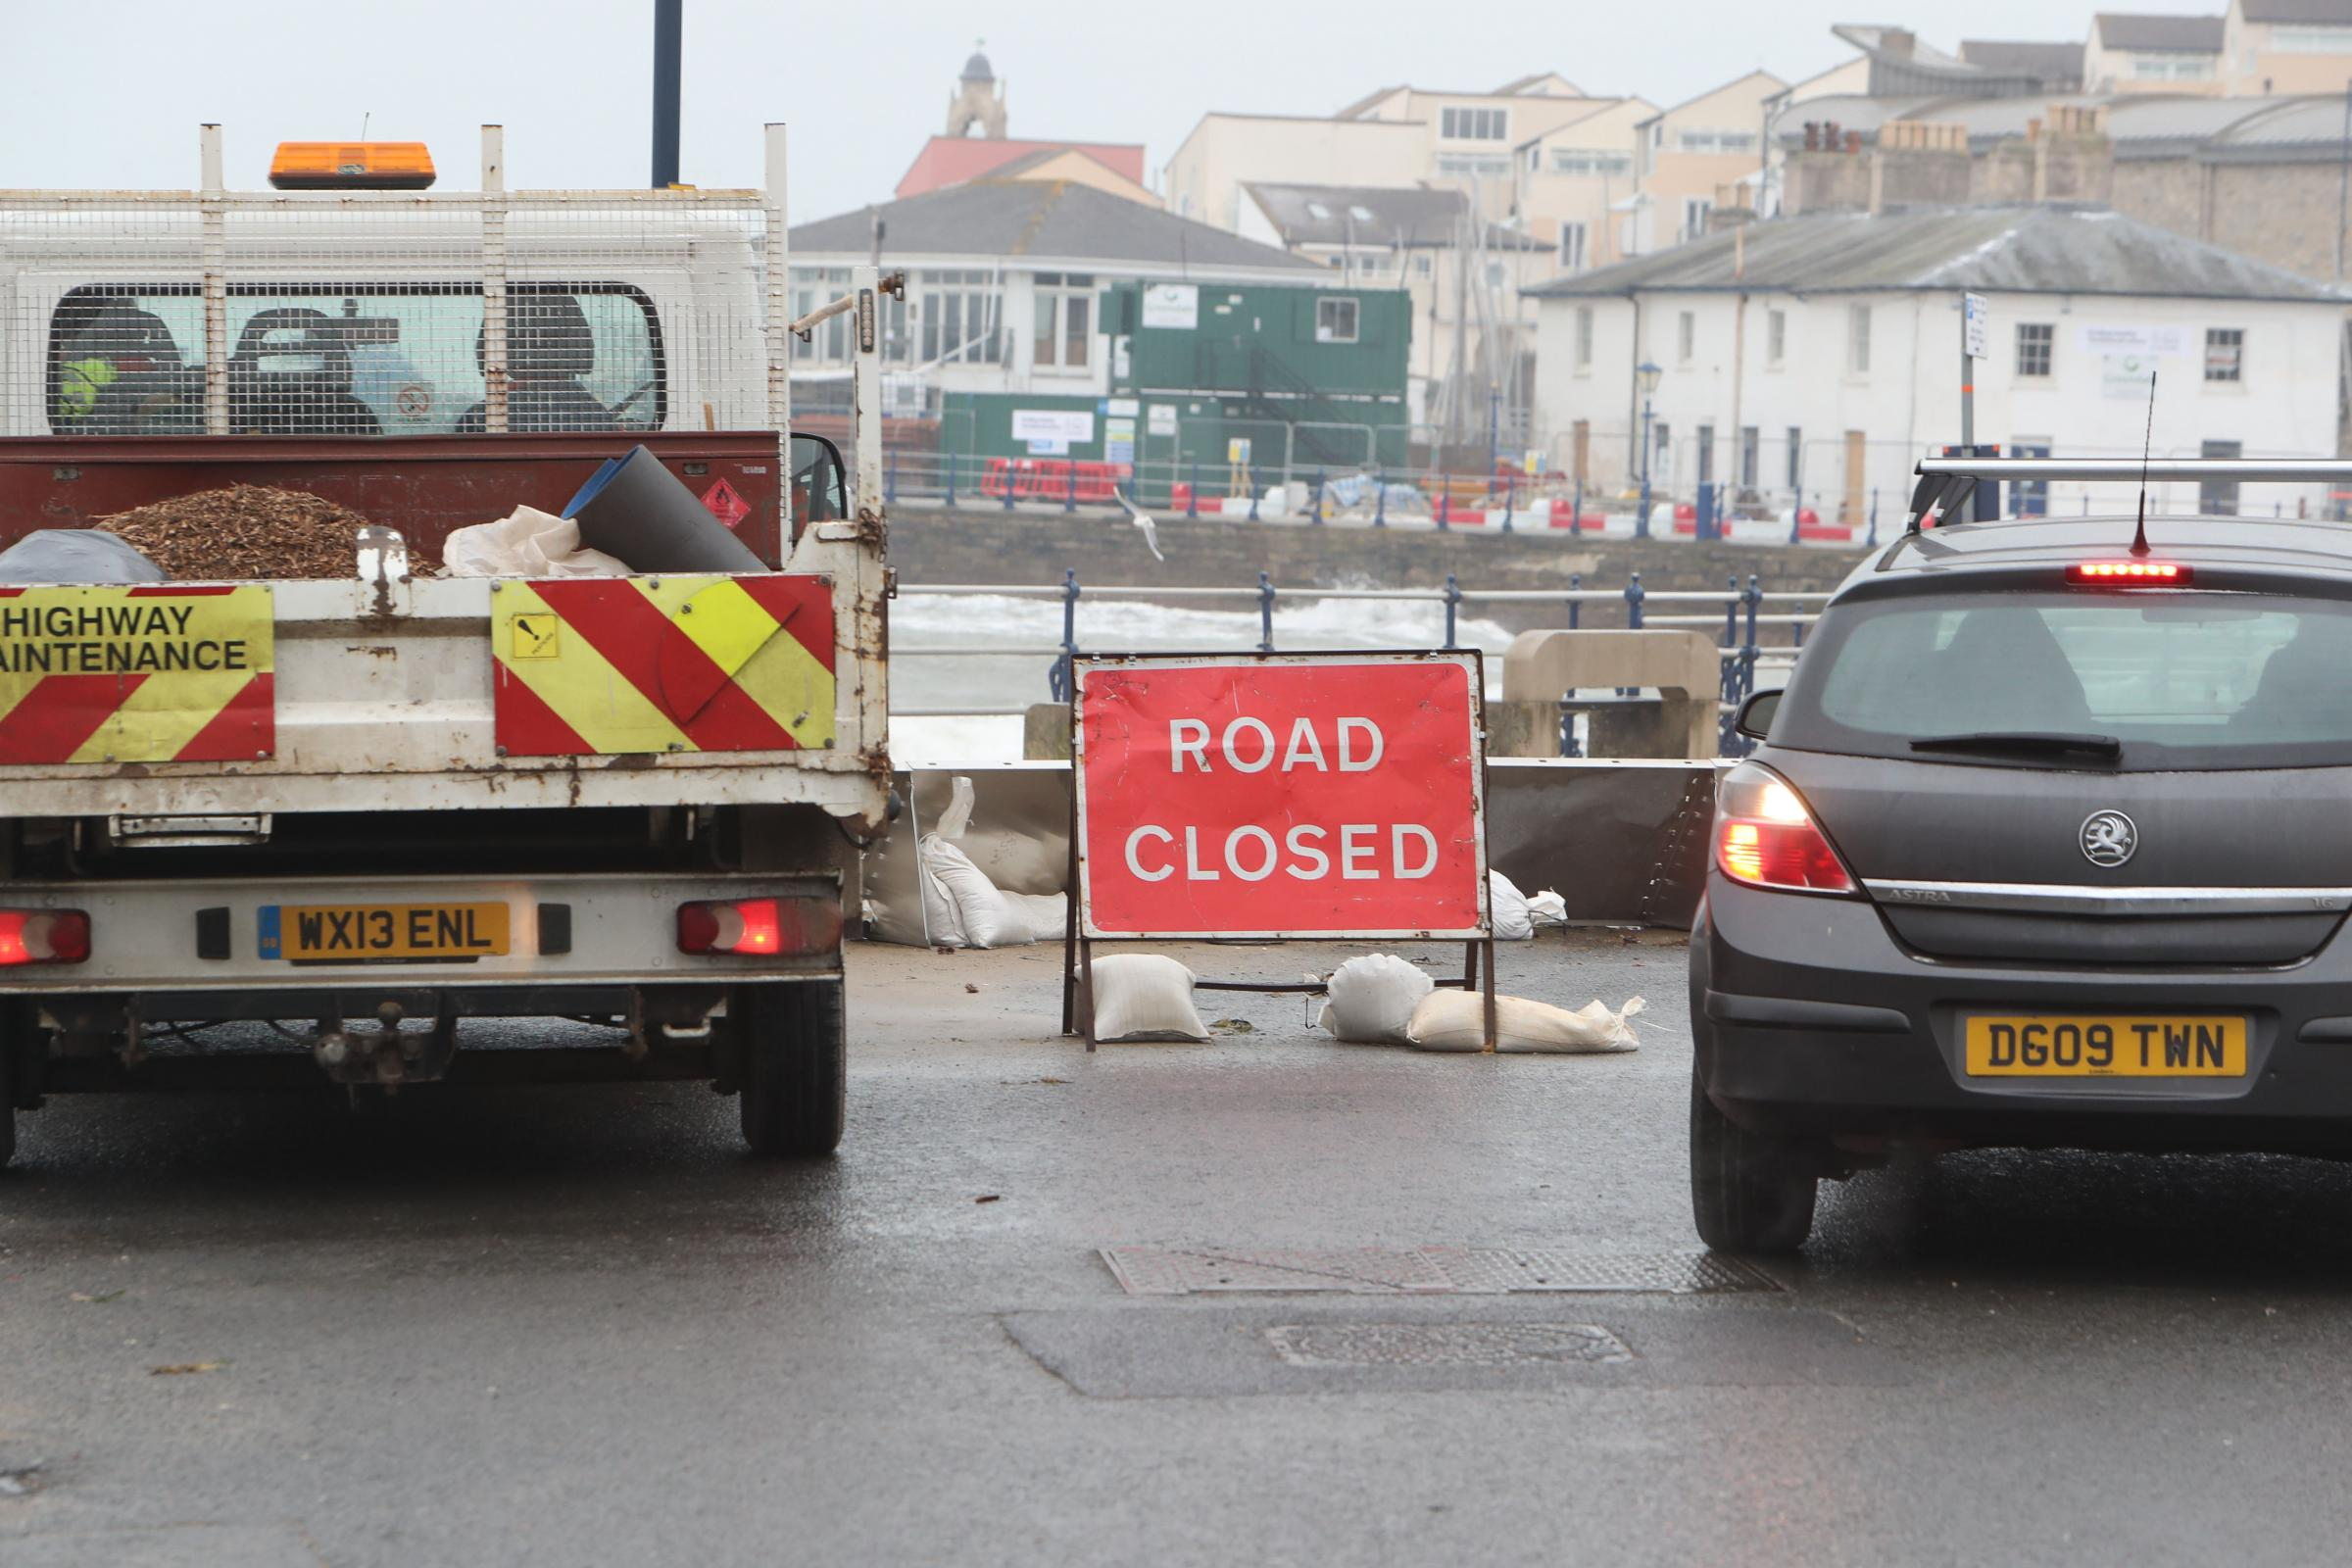 Swanage High Street has been closed due to high tides